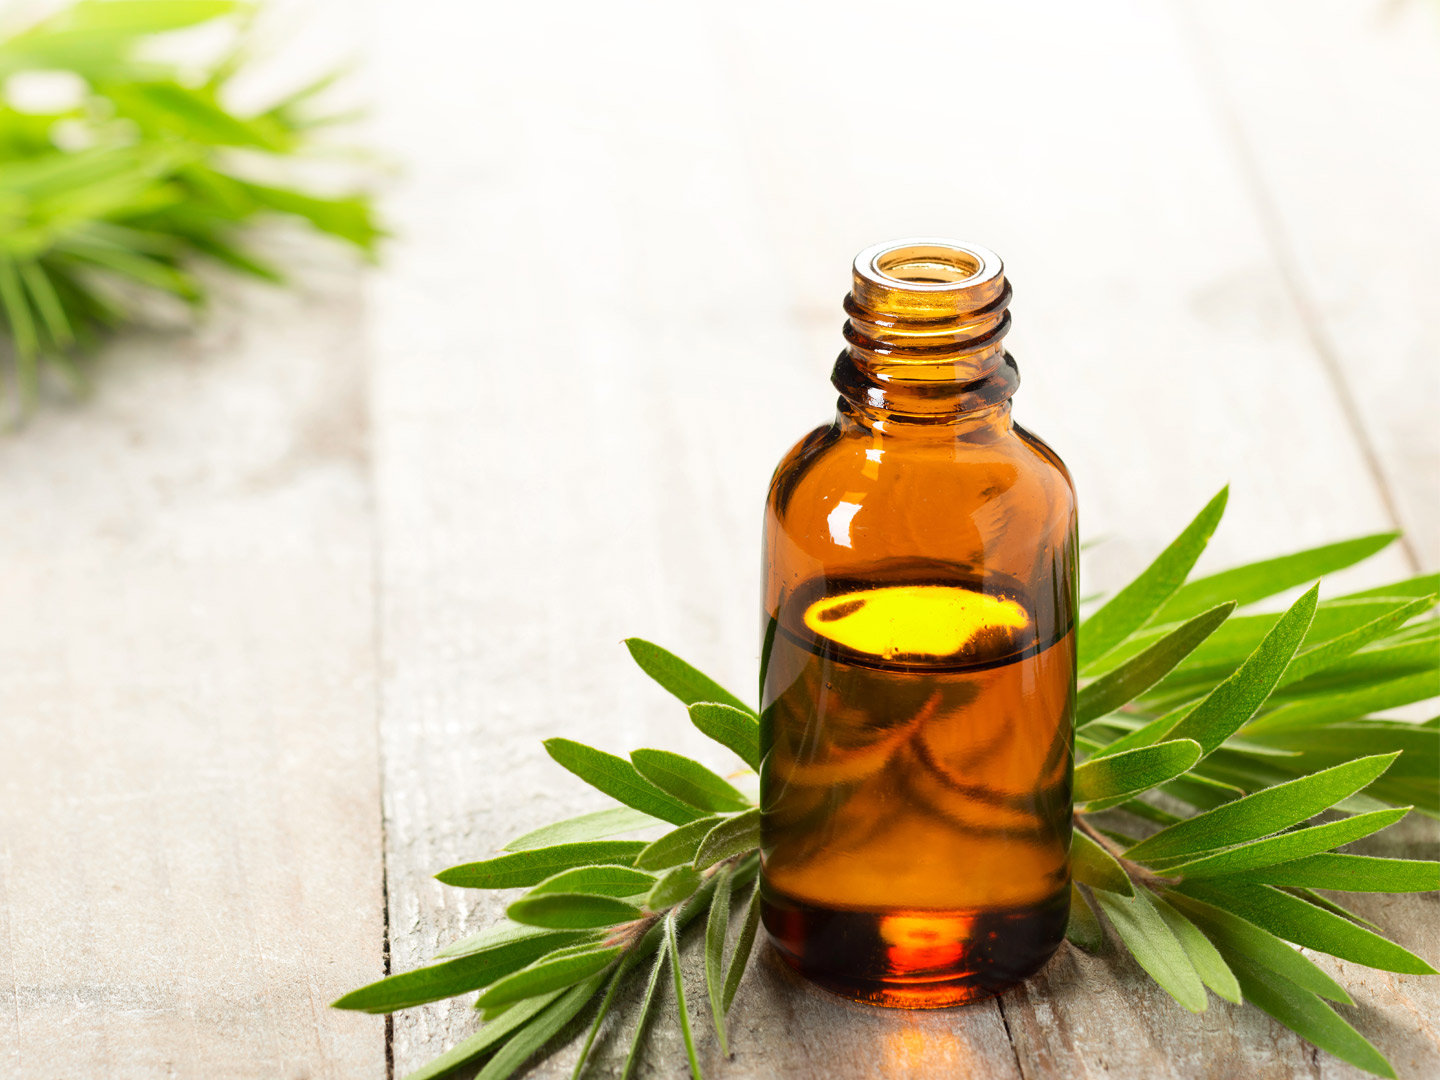 Do You Use Tea Tree Oil? Some Reasons You May Want To